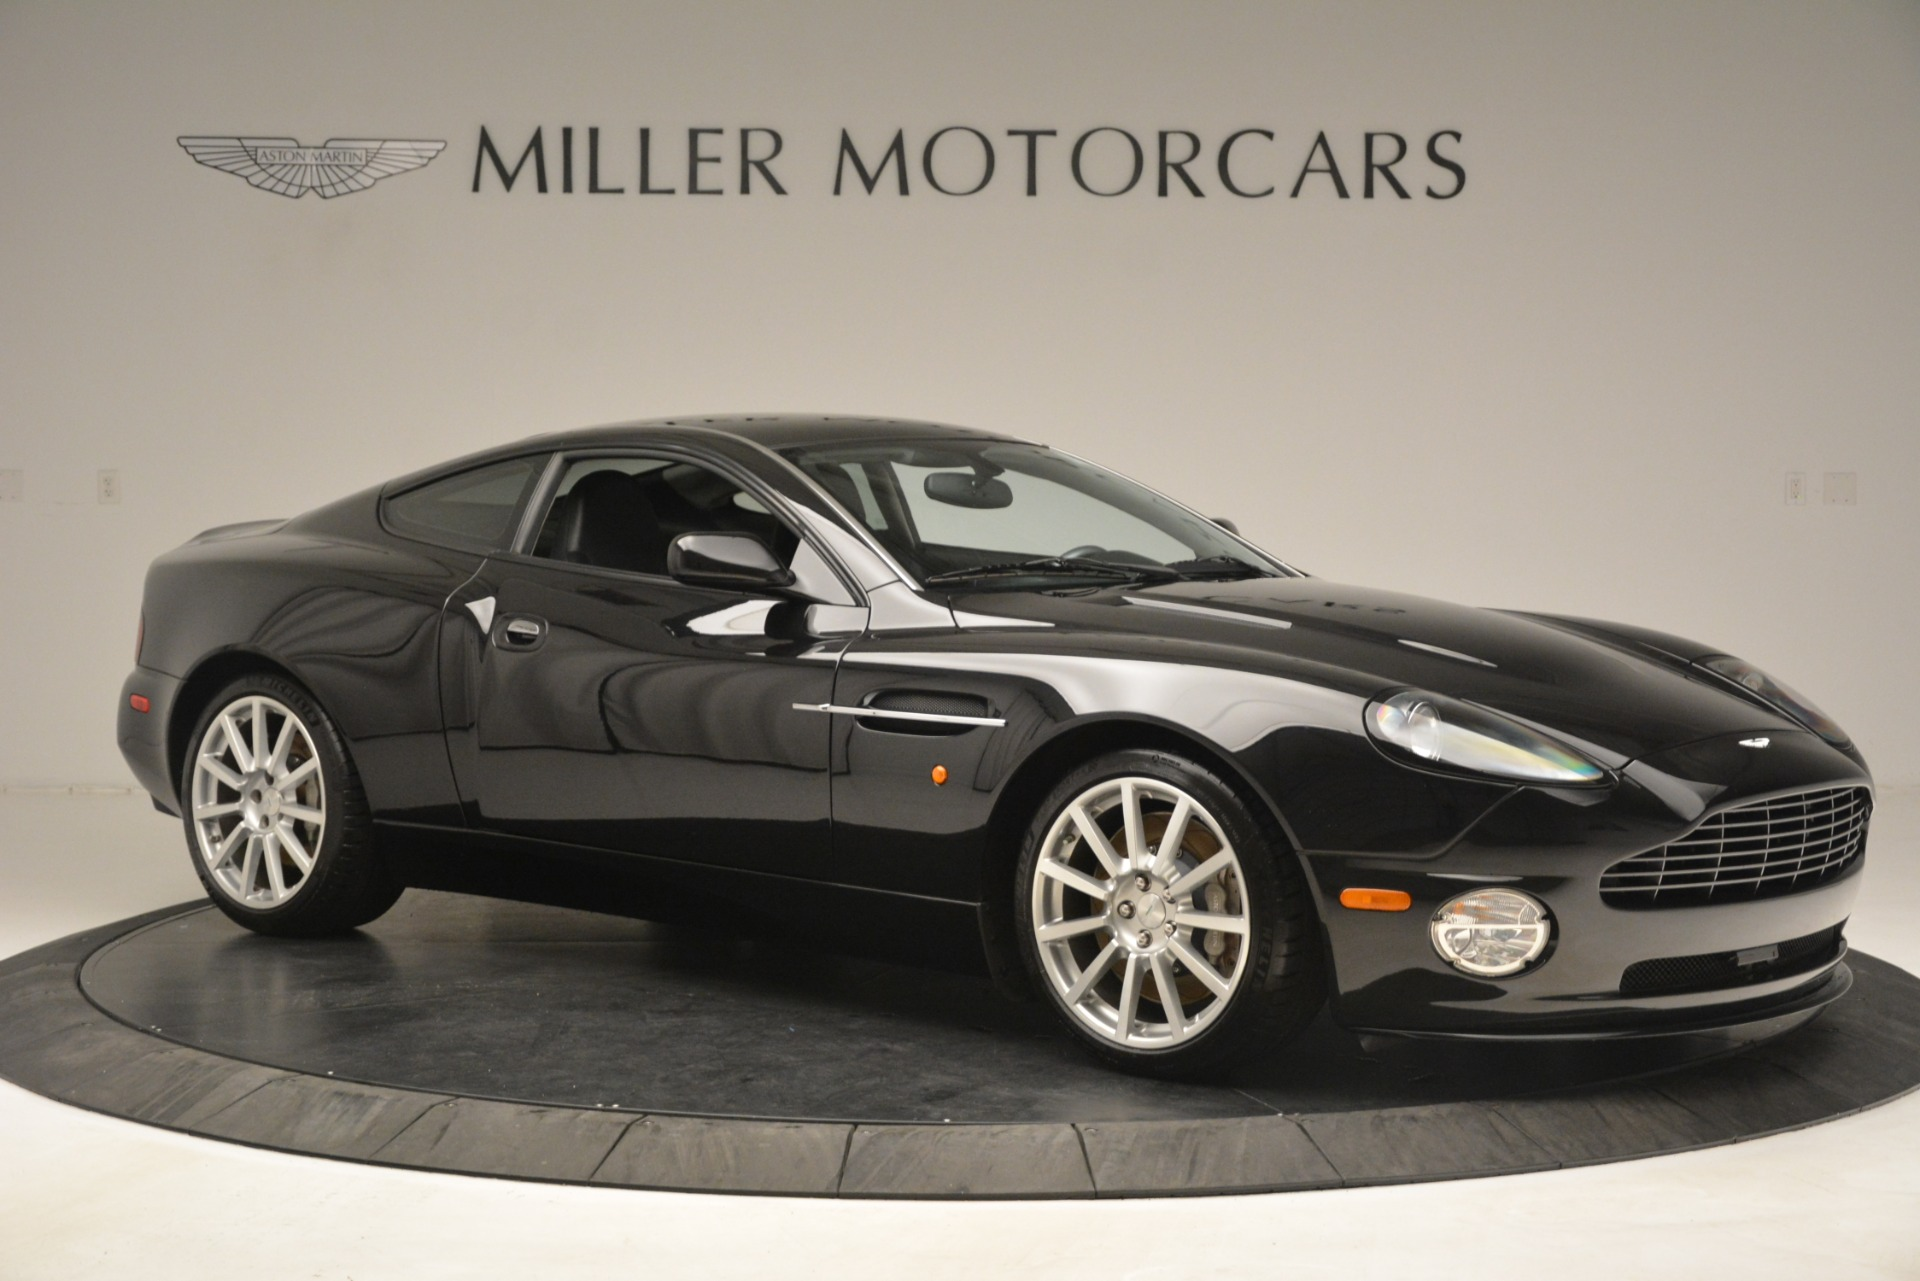 Used 2005 Aston Martin V12 Vanquish S Coupe For Sale In Greenwich, CT 3218_p10